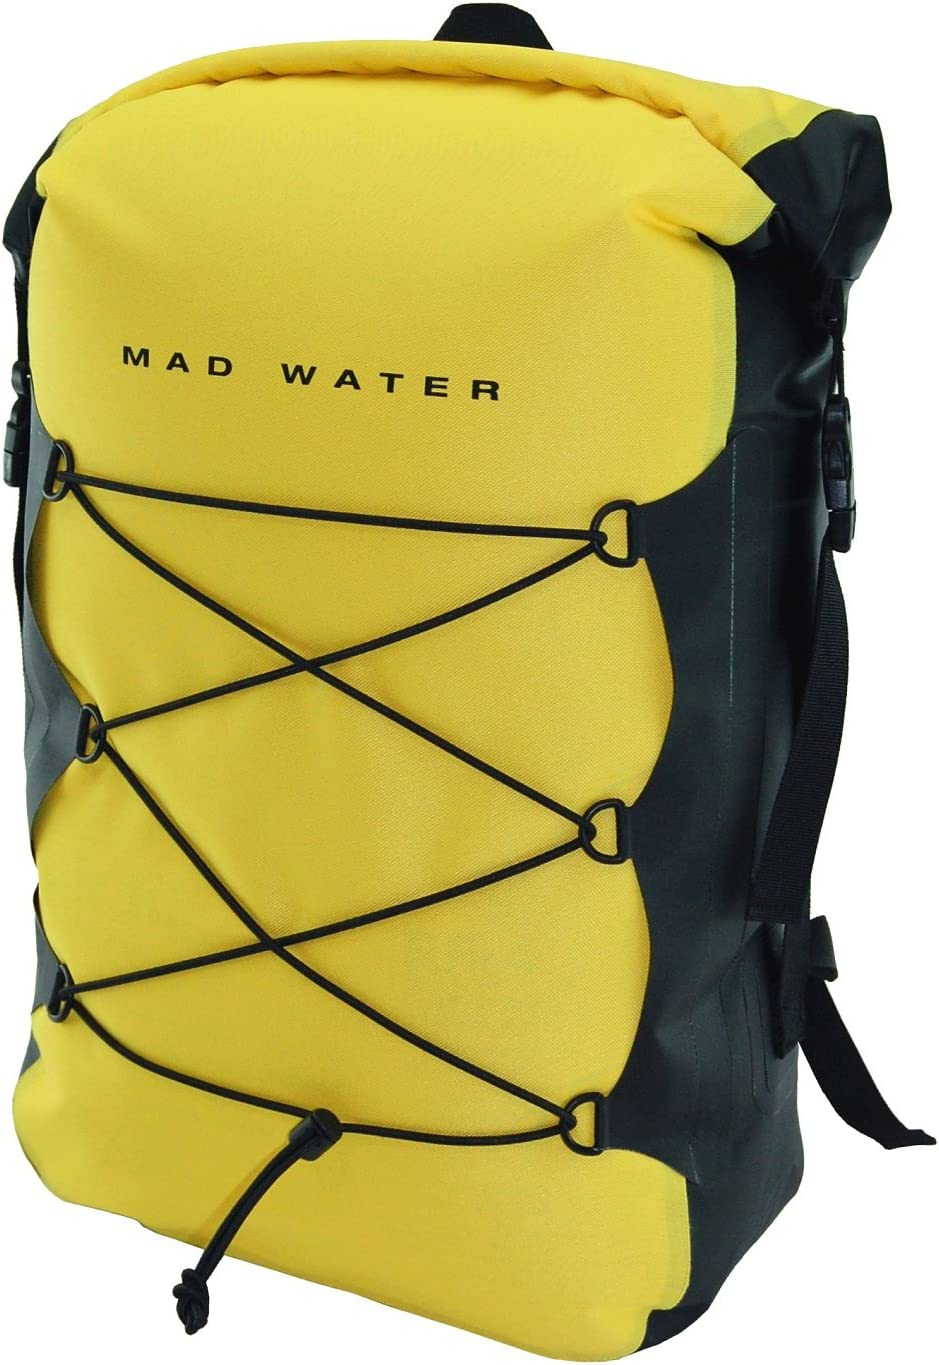 Mad Water Waterproof Classic Roll-Top Backpack